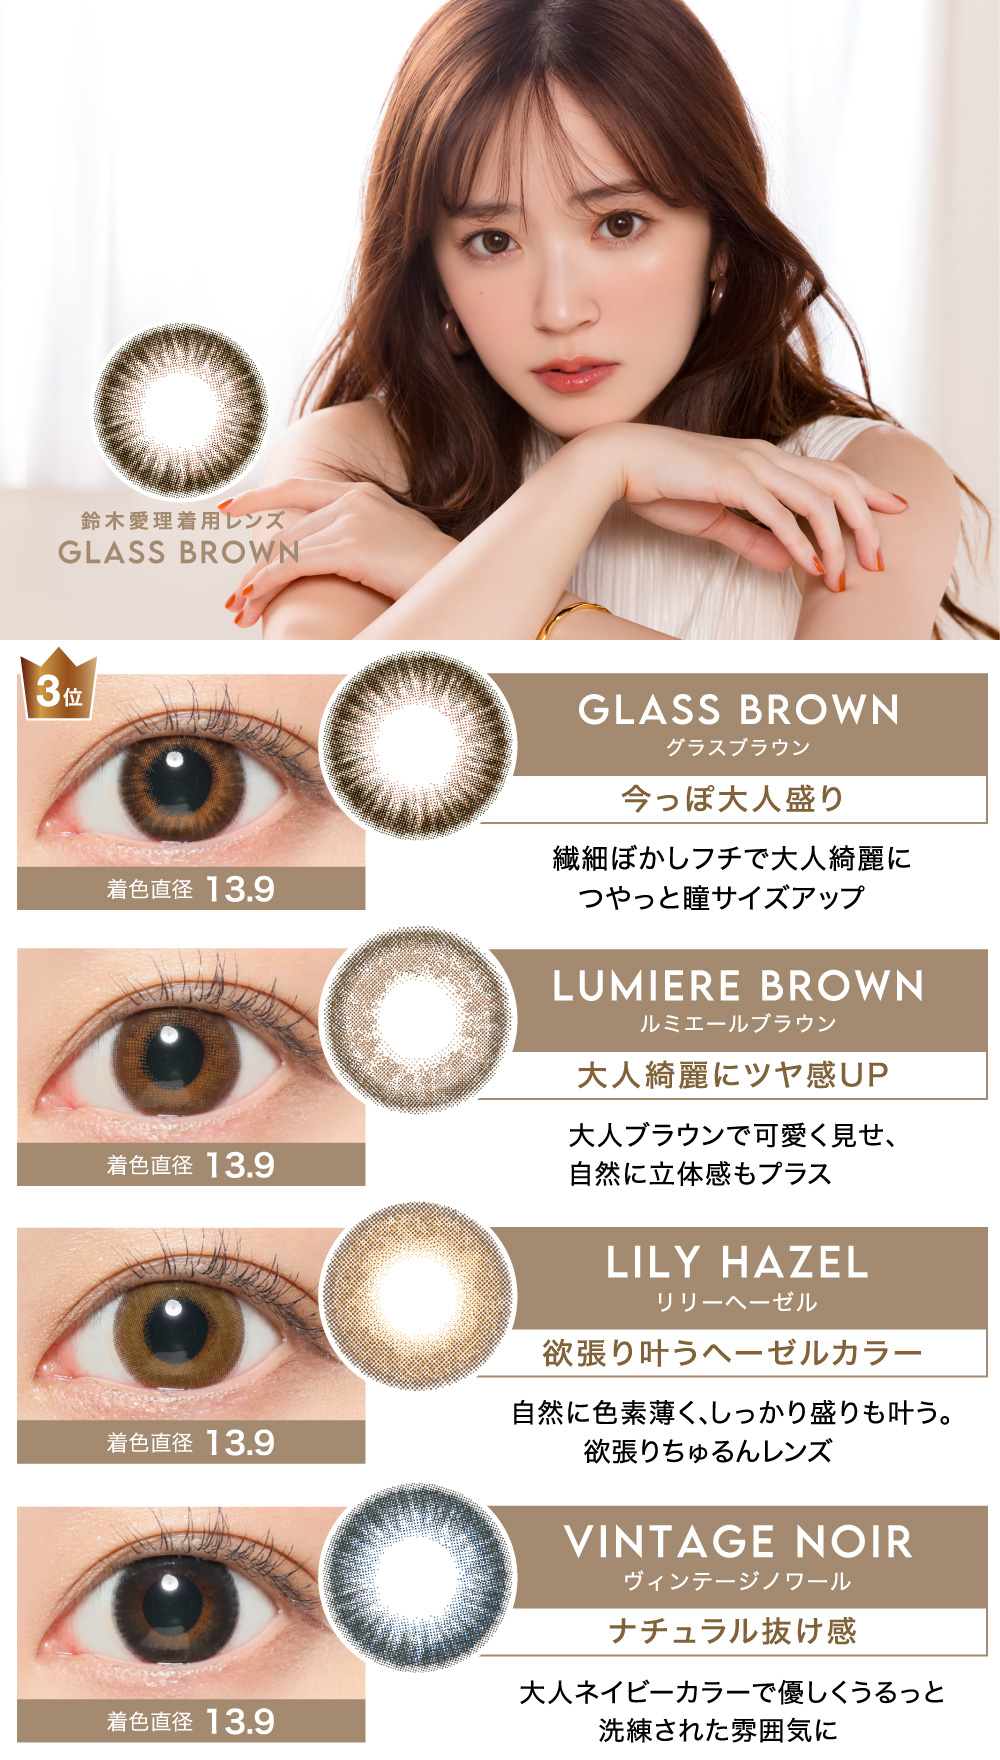 GLASS BROWN / LUMIERE BROWN / LILY HAZEL / VINTAGE NOIR